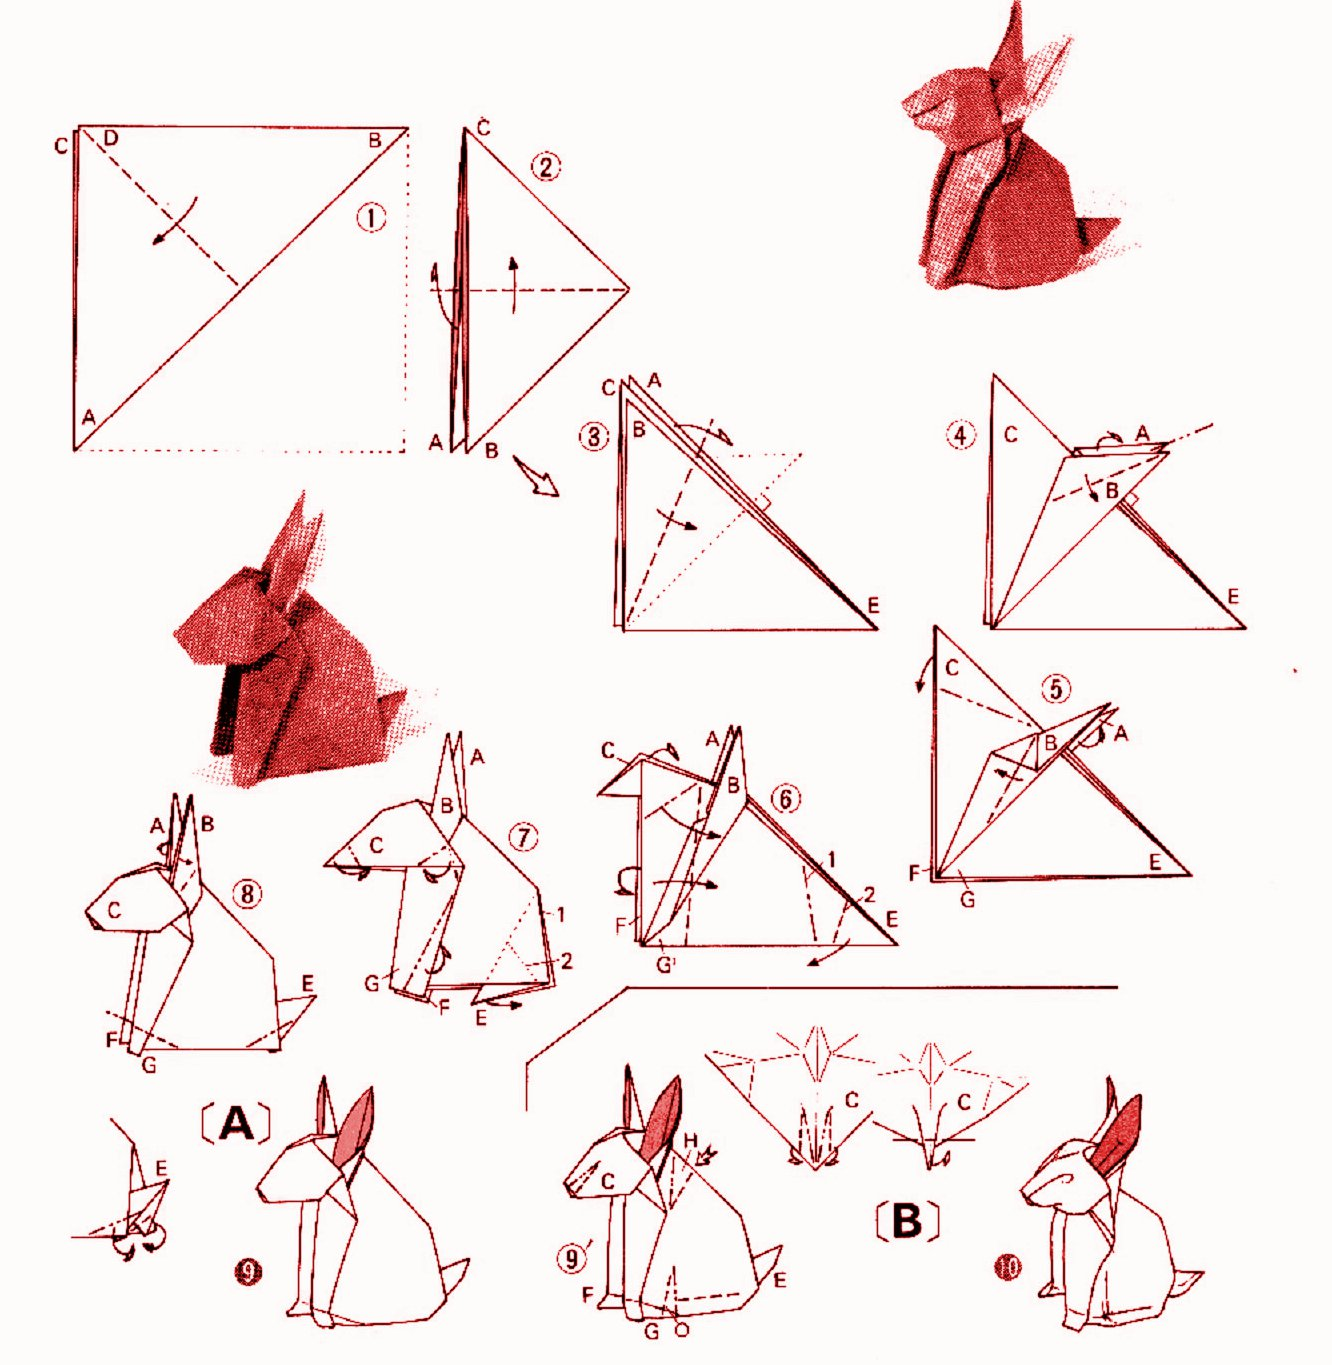 Rabbit akira yoshizawa rabbit origami diagram 1 jeuxipadfo Image collections